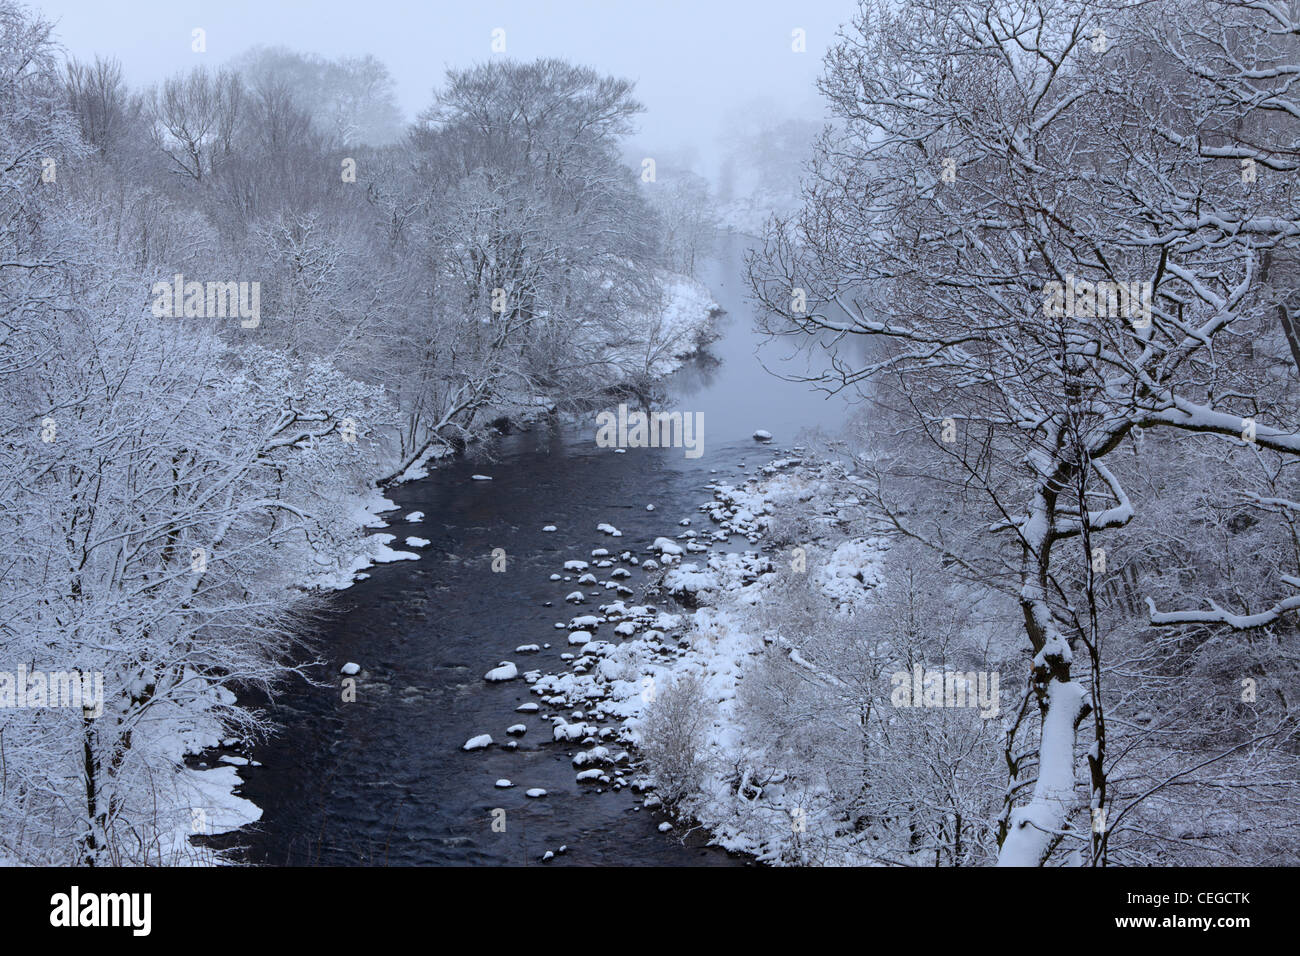 Snow covers the trees along the River Wharfe as seen from Strid Wood, Barden, Wharfedale, Yorkshire - Stock Image